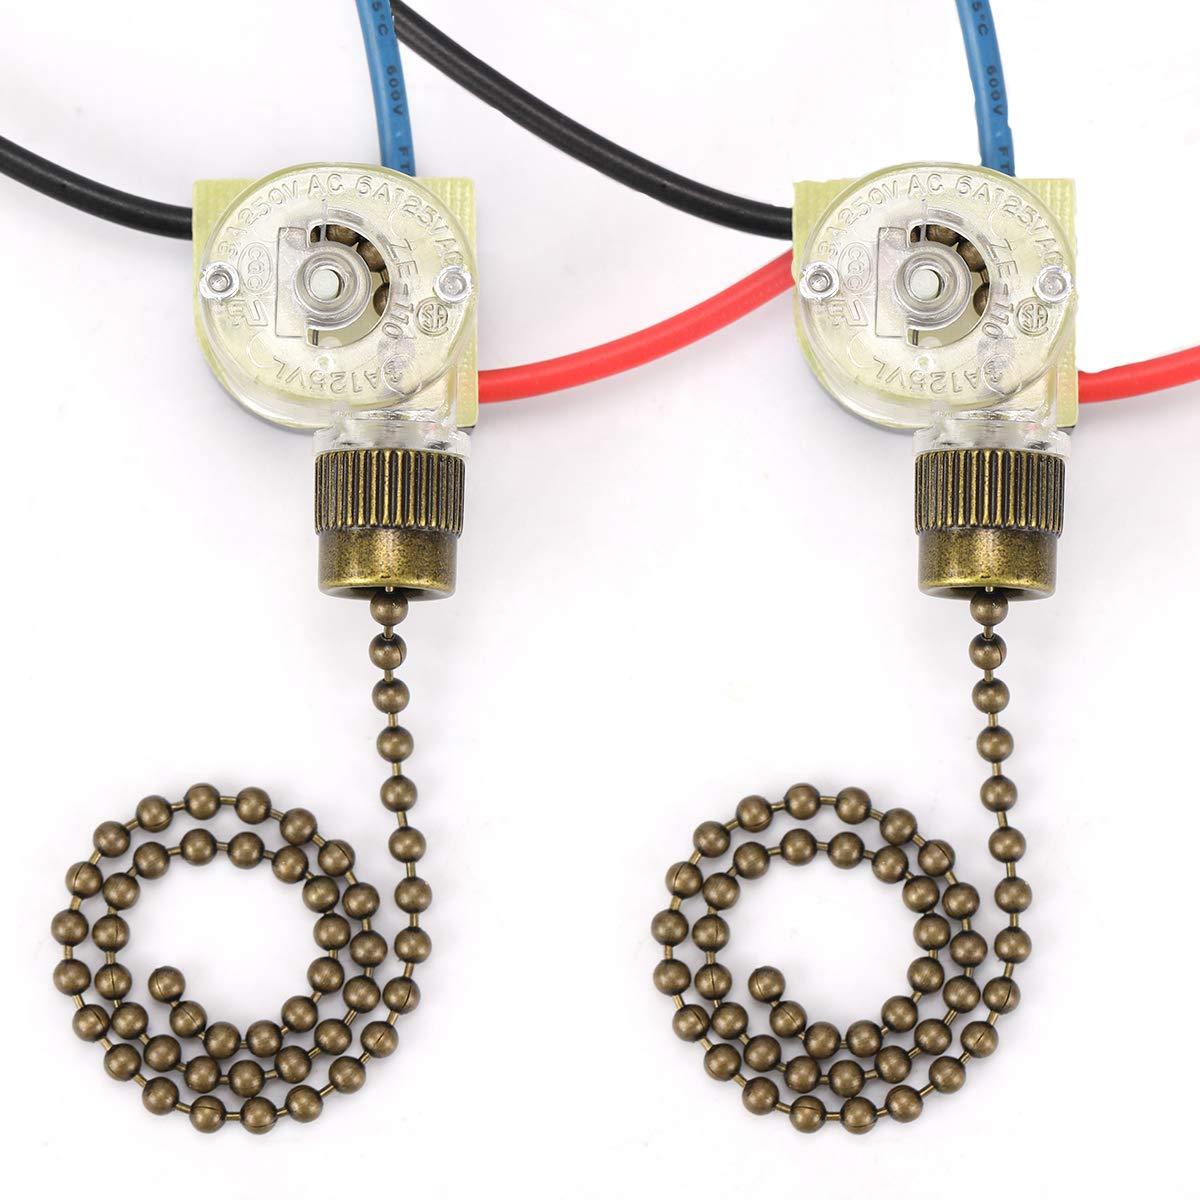 Ceiling Fan Switch Hunter Zing Ear ZE-110 Ceiling Fan Light Switch 3 Way 3-Wire Replacement Pull Chain Switch(2 Pack, Bronze)